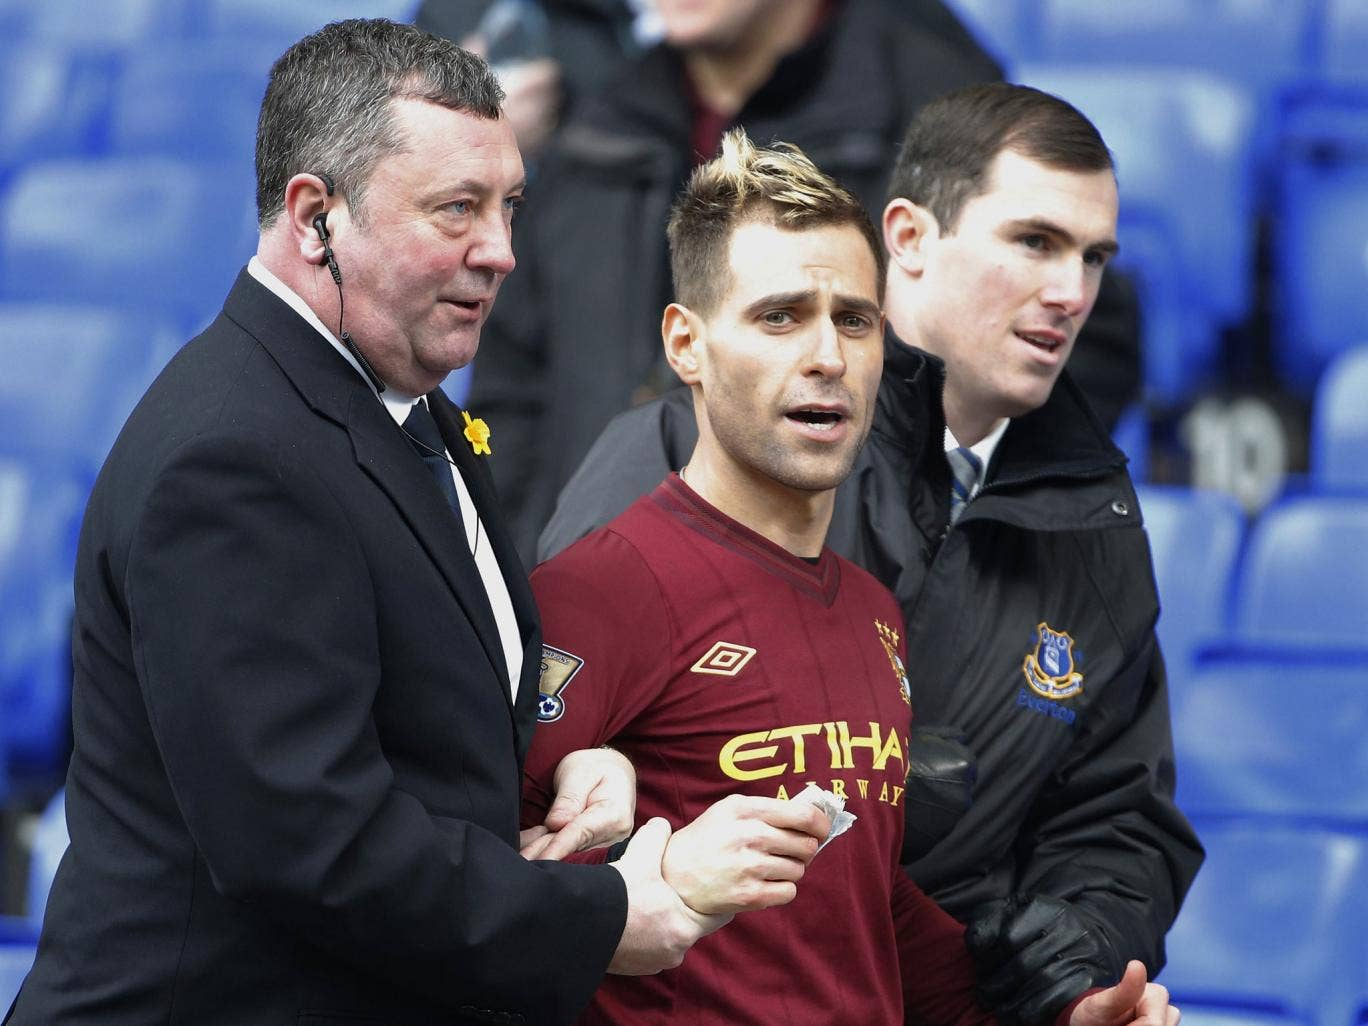 Jason Bent, Simon Brodkin's spoof footballer, being taken off the pitch